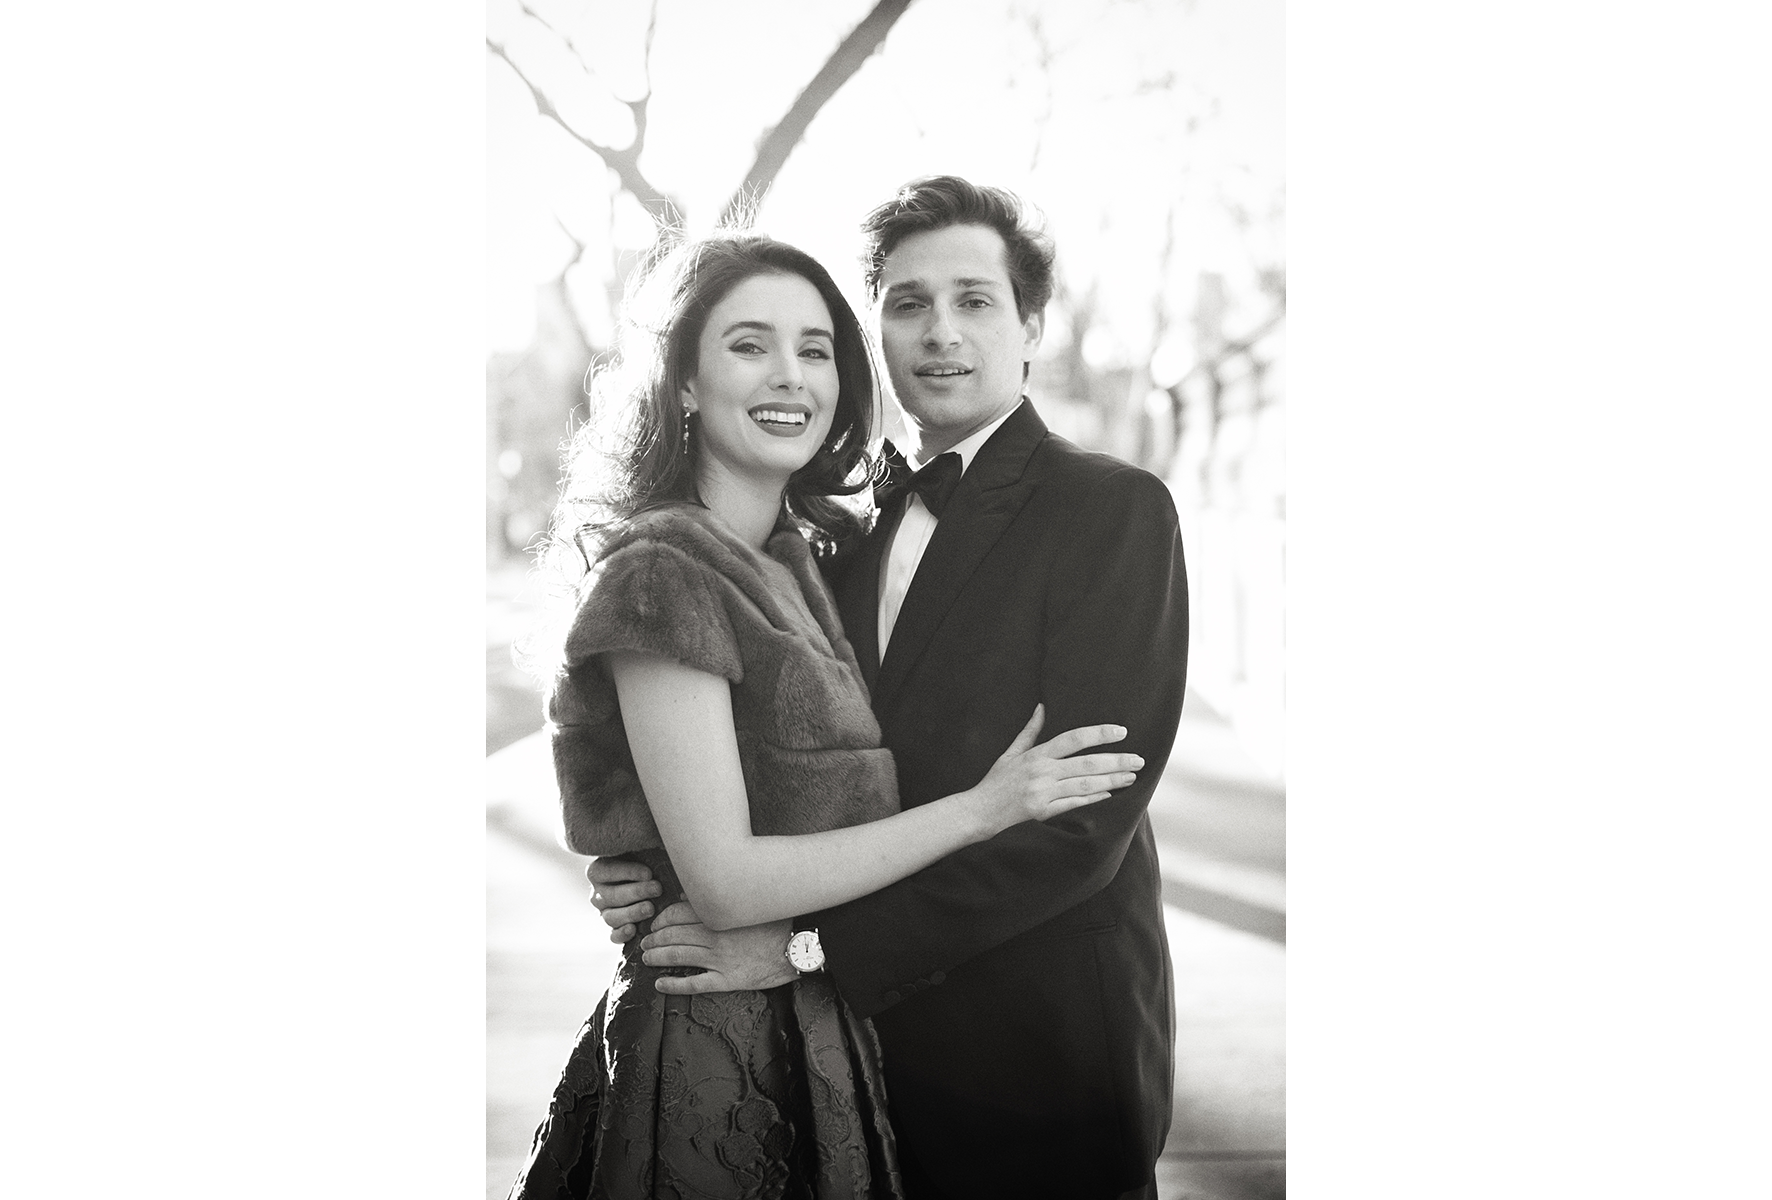 raquelreis_wedding_photography_frickcollection_007.png